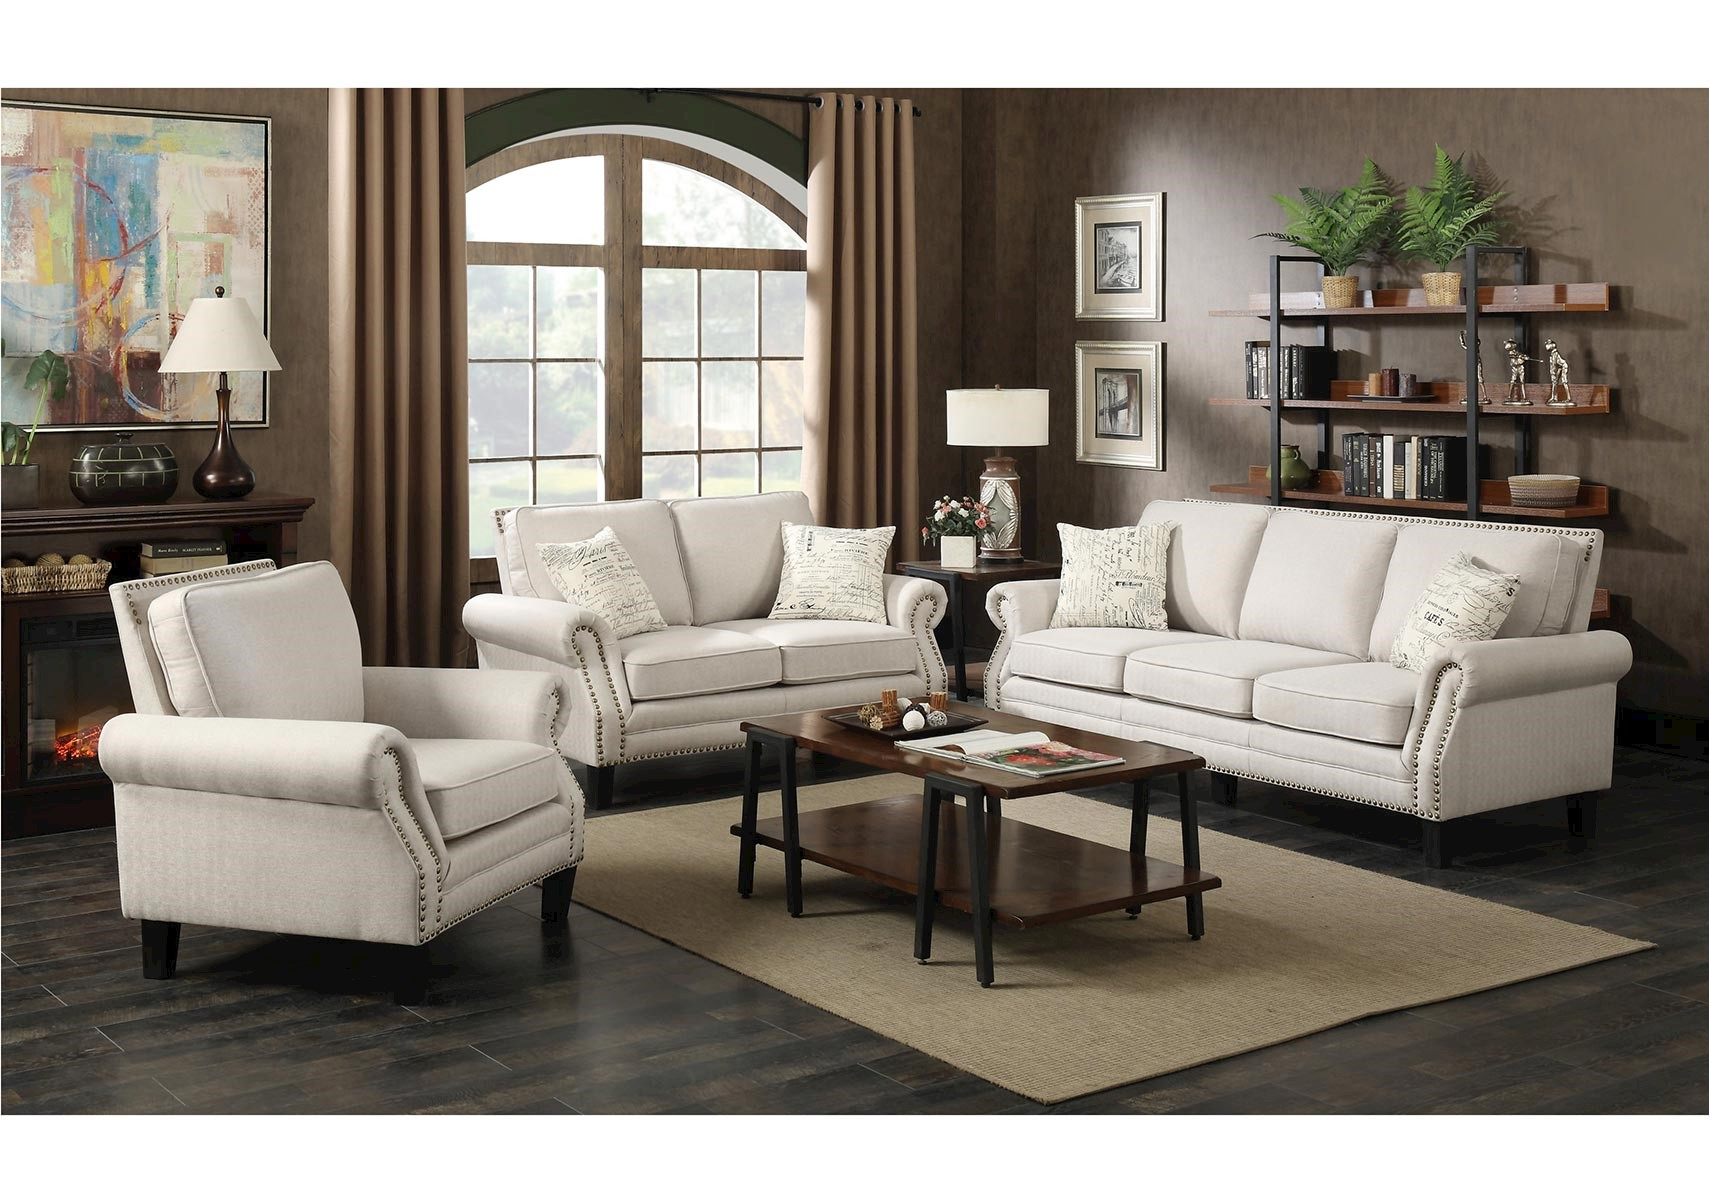 Yorktown 3 Pc Living Room Set